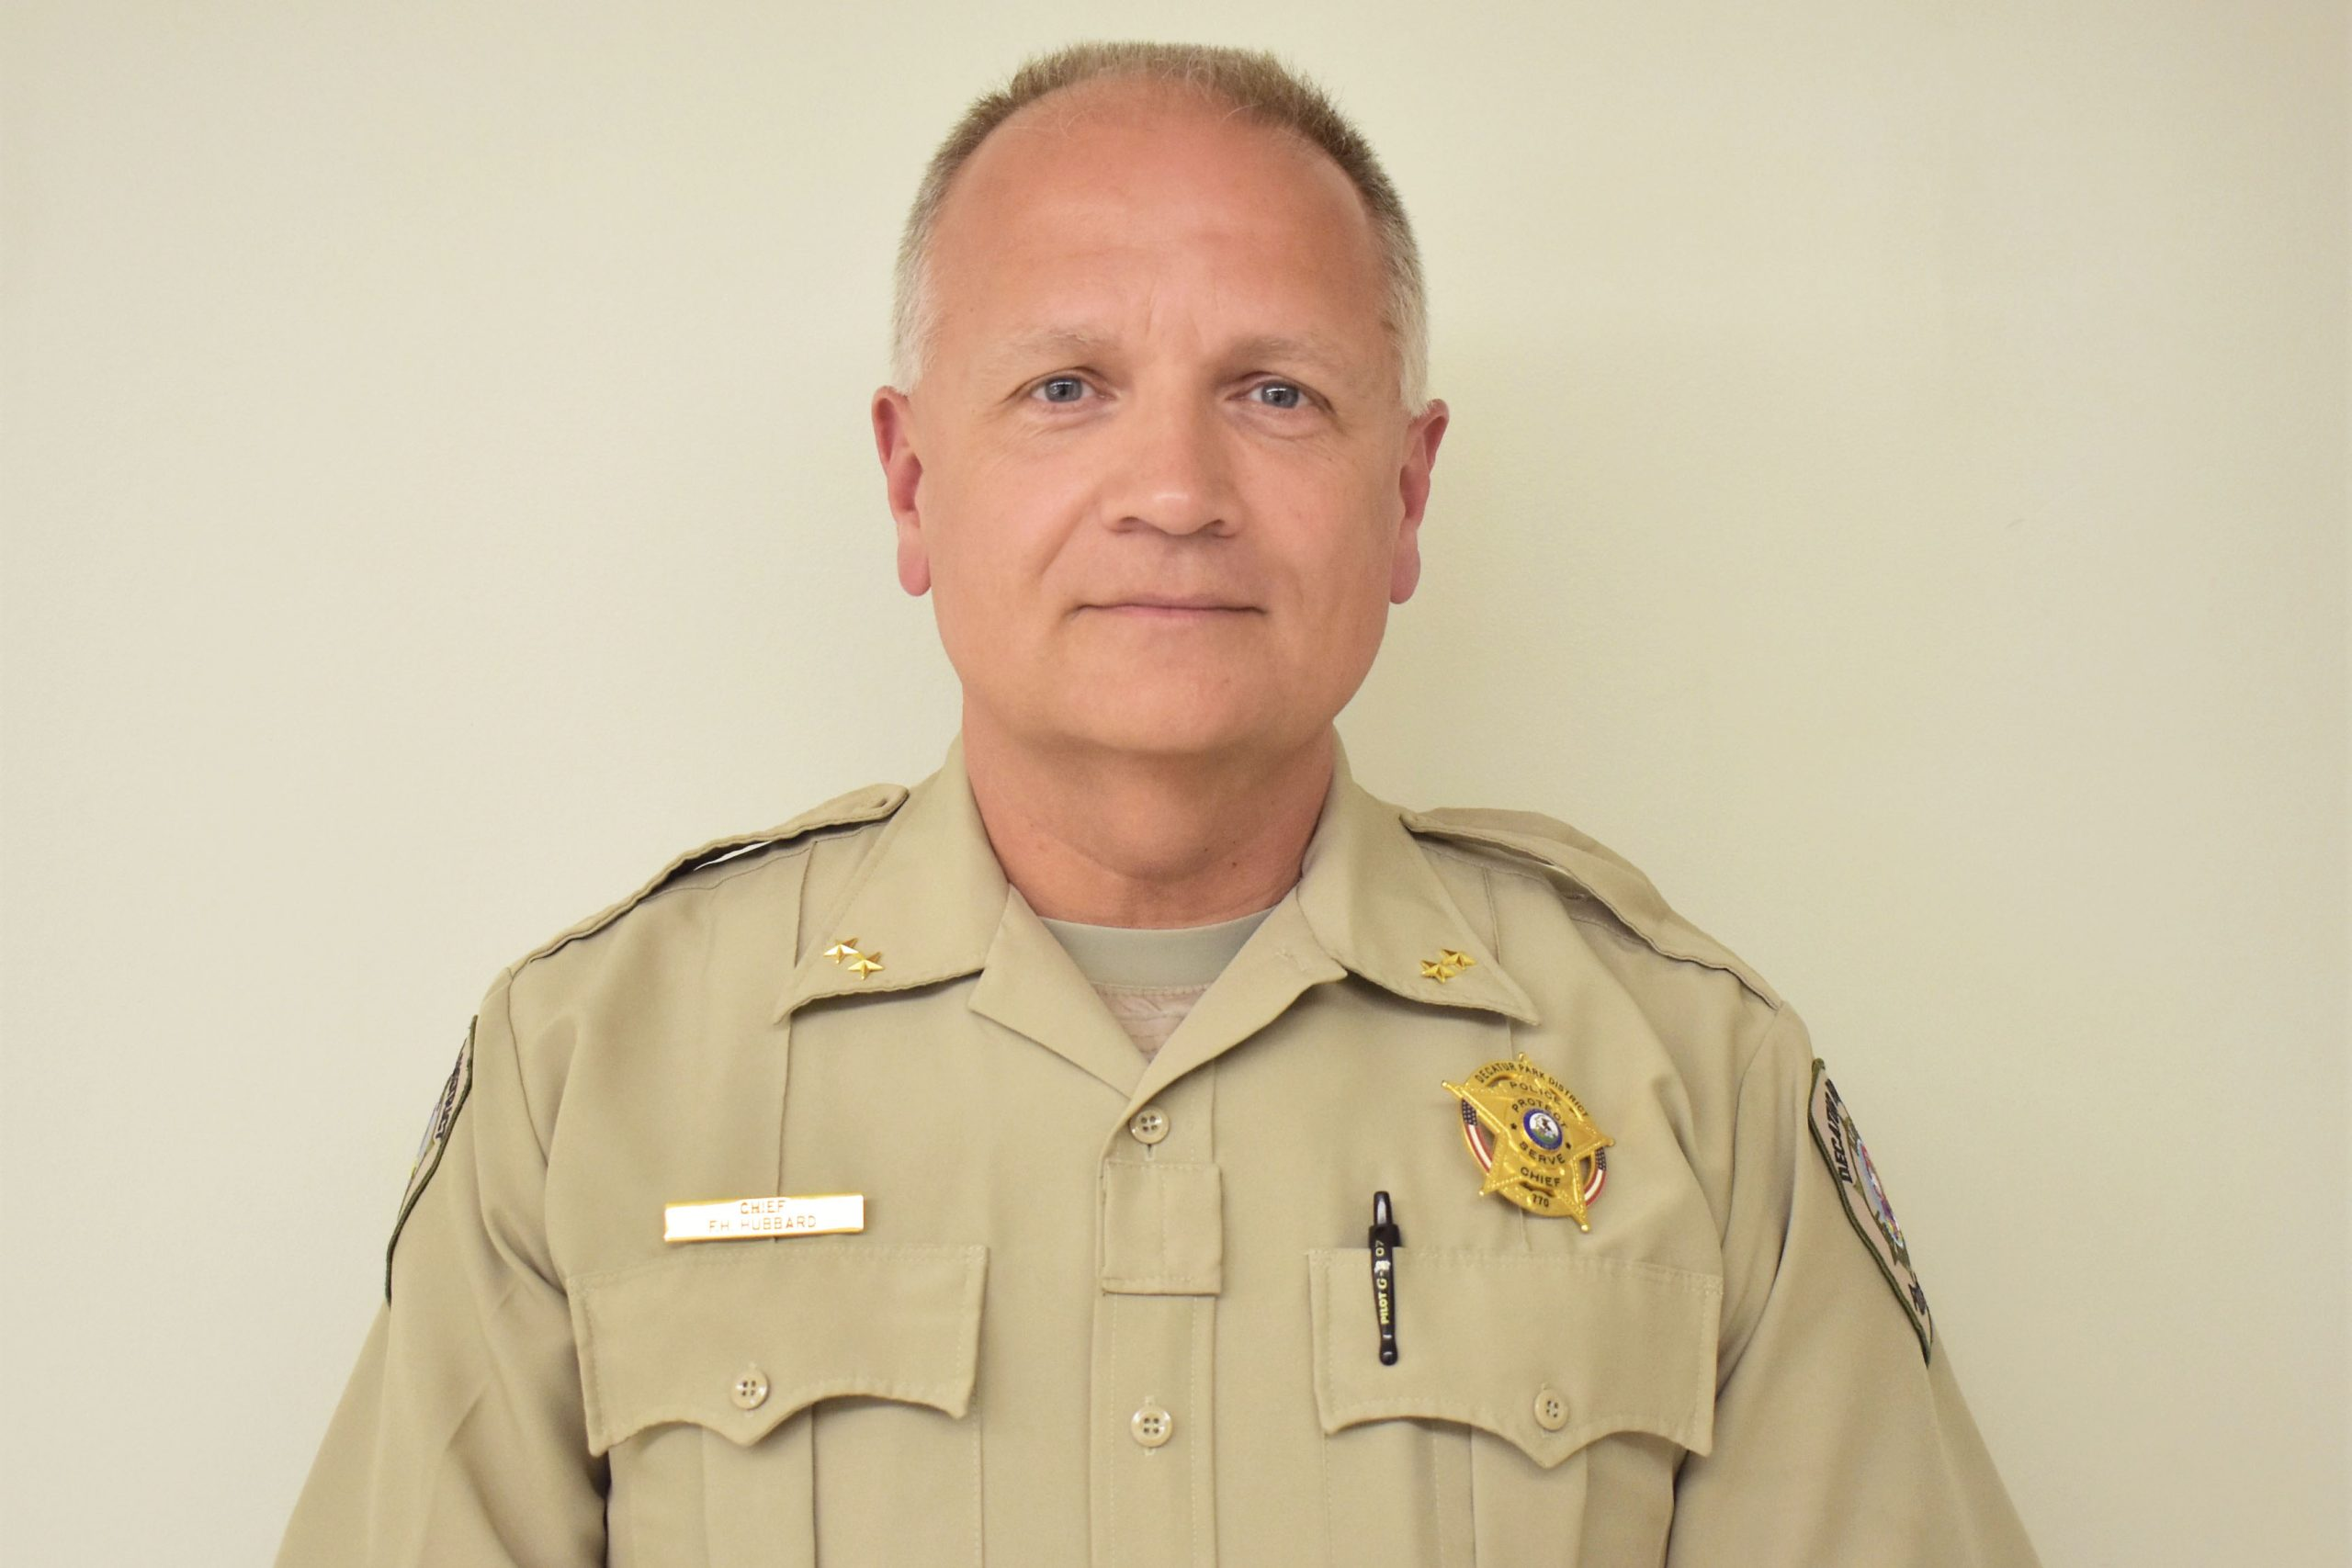 Frank Hubbard Named New Park Police Chief